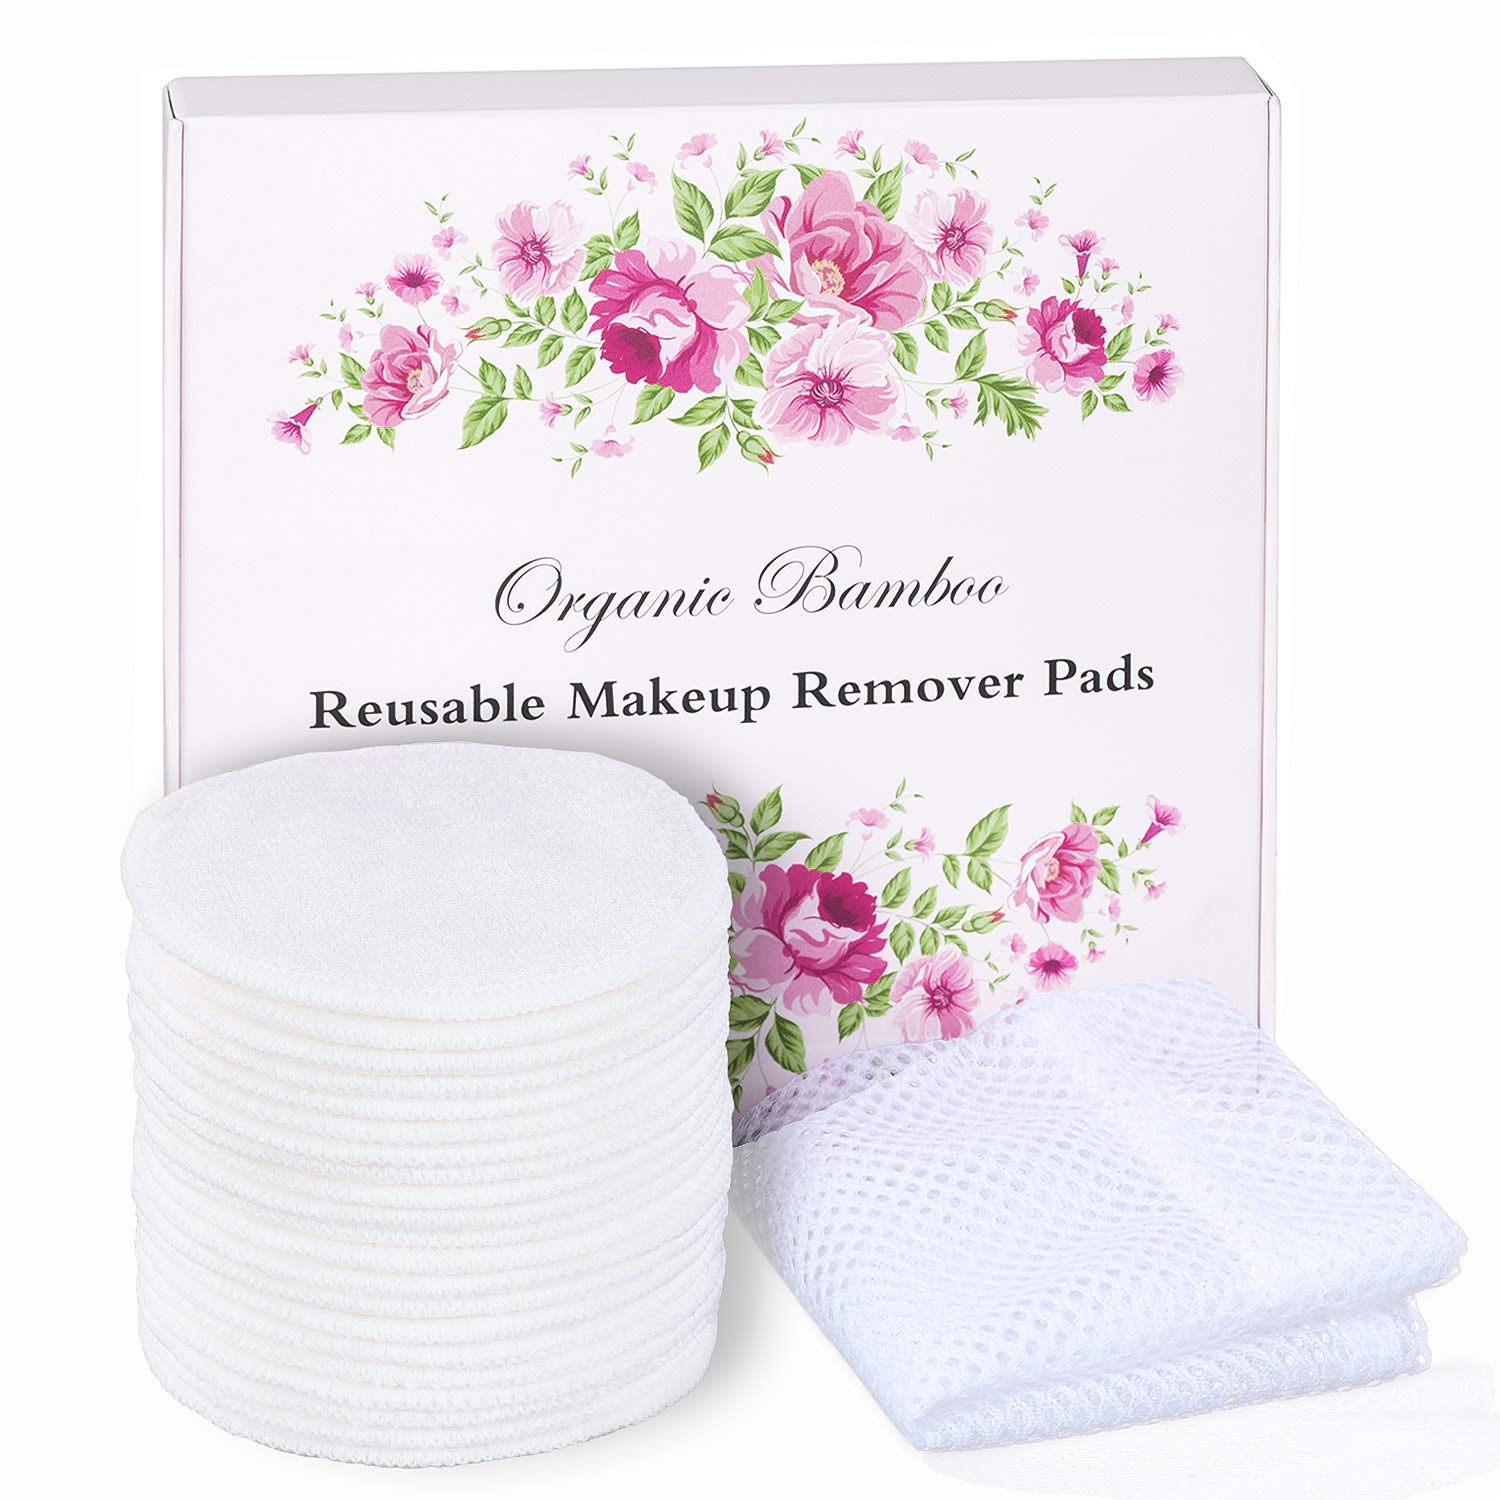 20 Packs Organic Reusable Makeup Remover Pads,washable Natural Bamboo Cotton Rounds -reusable cotton pads for face wipes with laundry bag